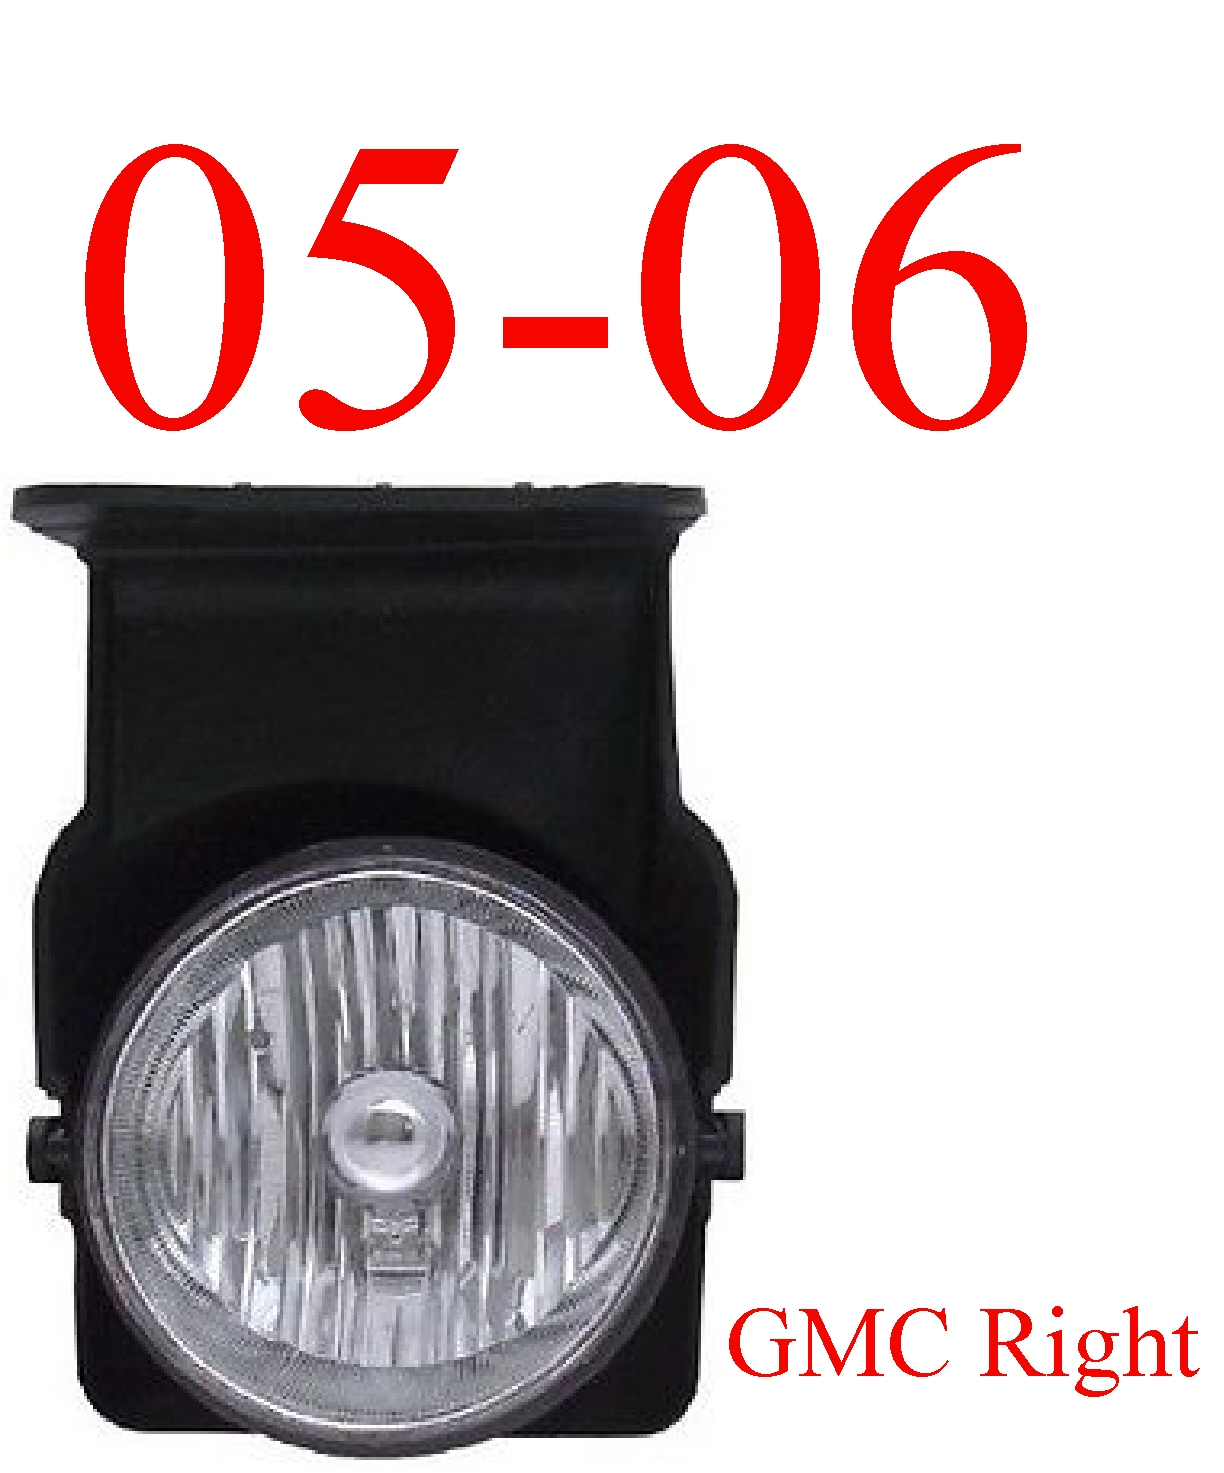 05-06 GMC Truck Right Fog Light Assembly